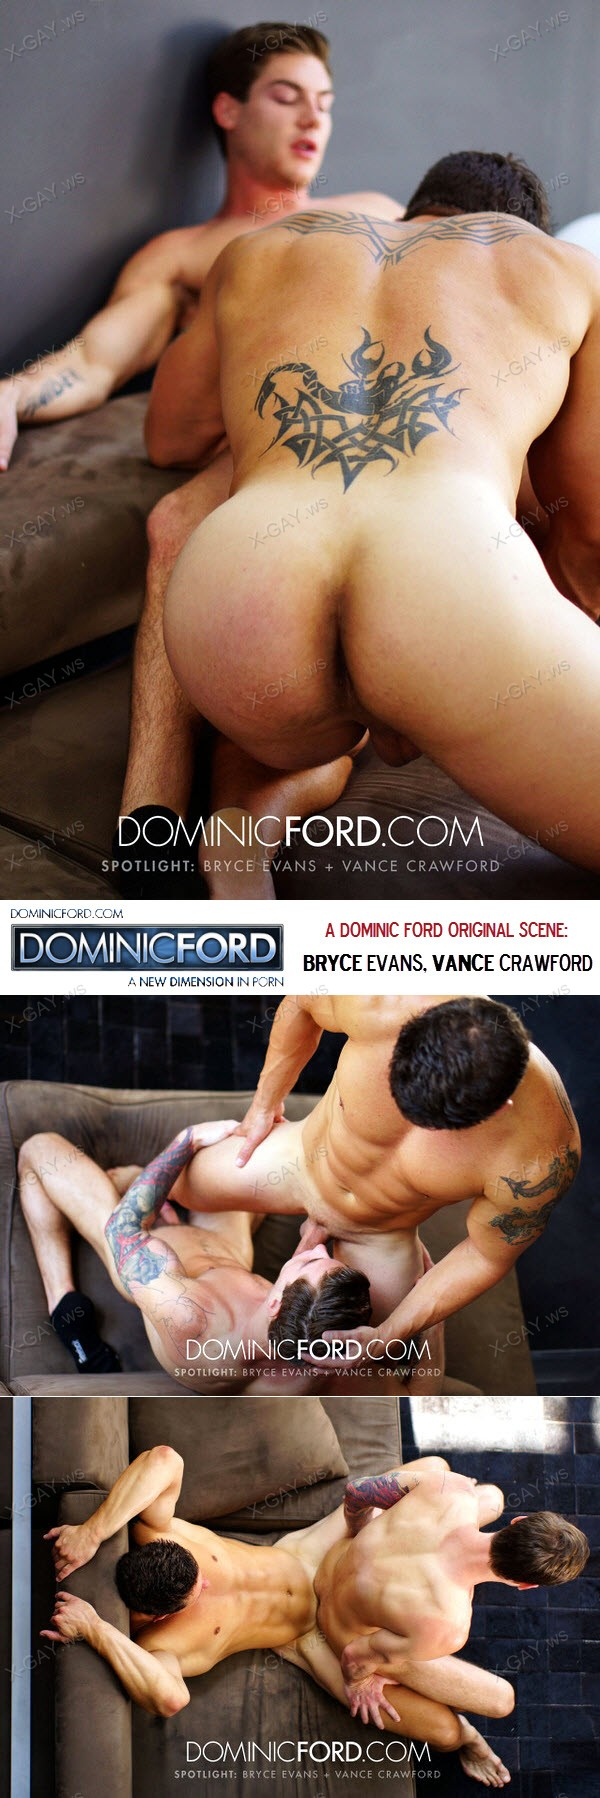 DominicFord: Spotlight (Bryce Evans, Vance Crawford)